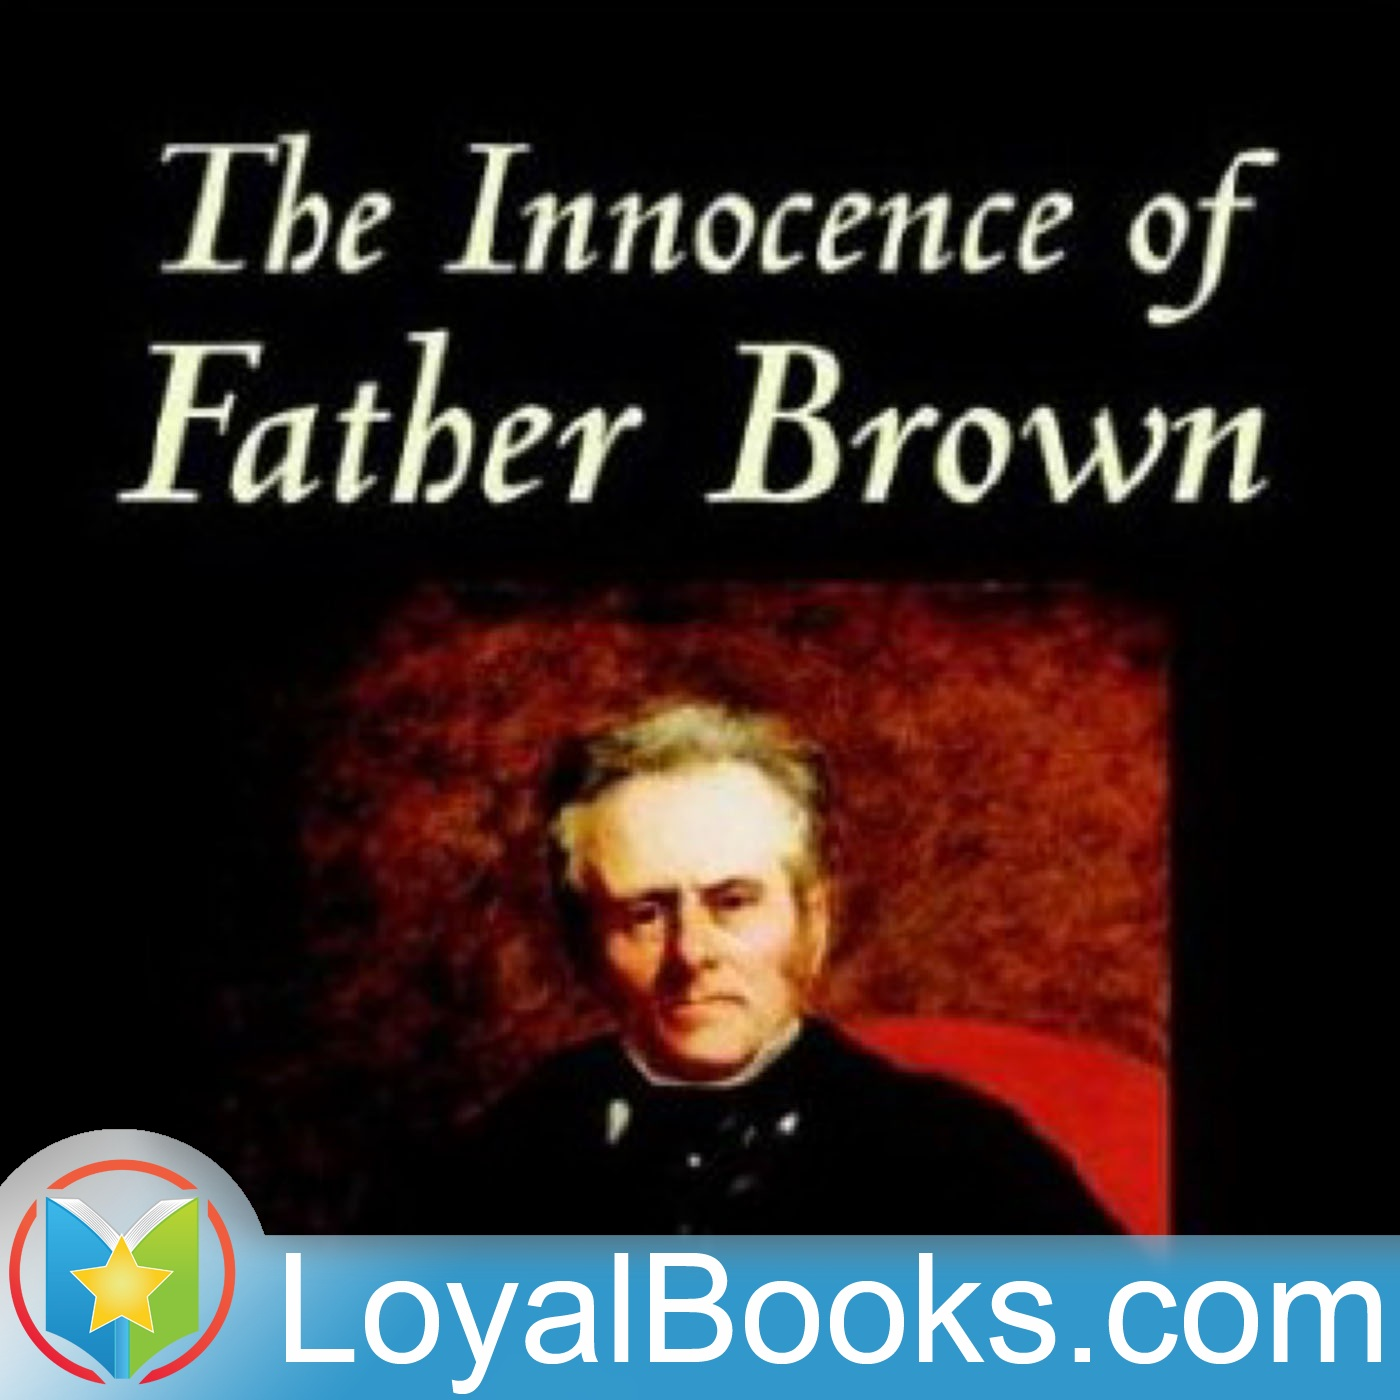 <![CDATA[The Innocence of Father Brown by G. K. Chesterton]]>